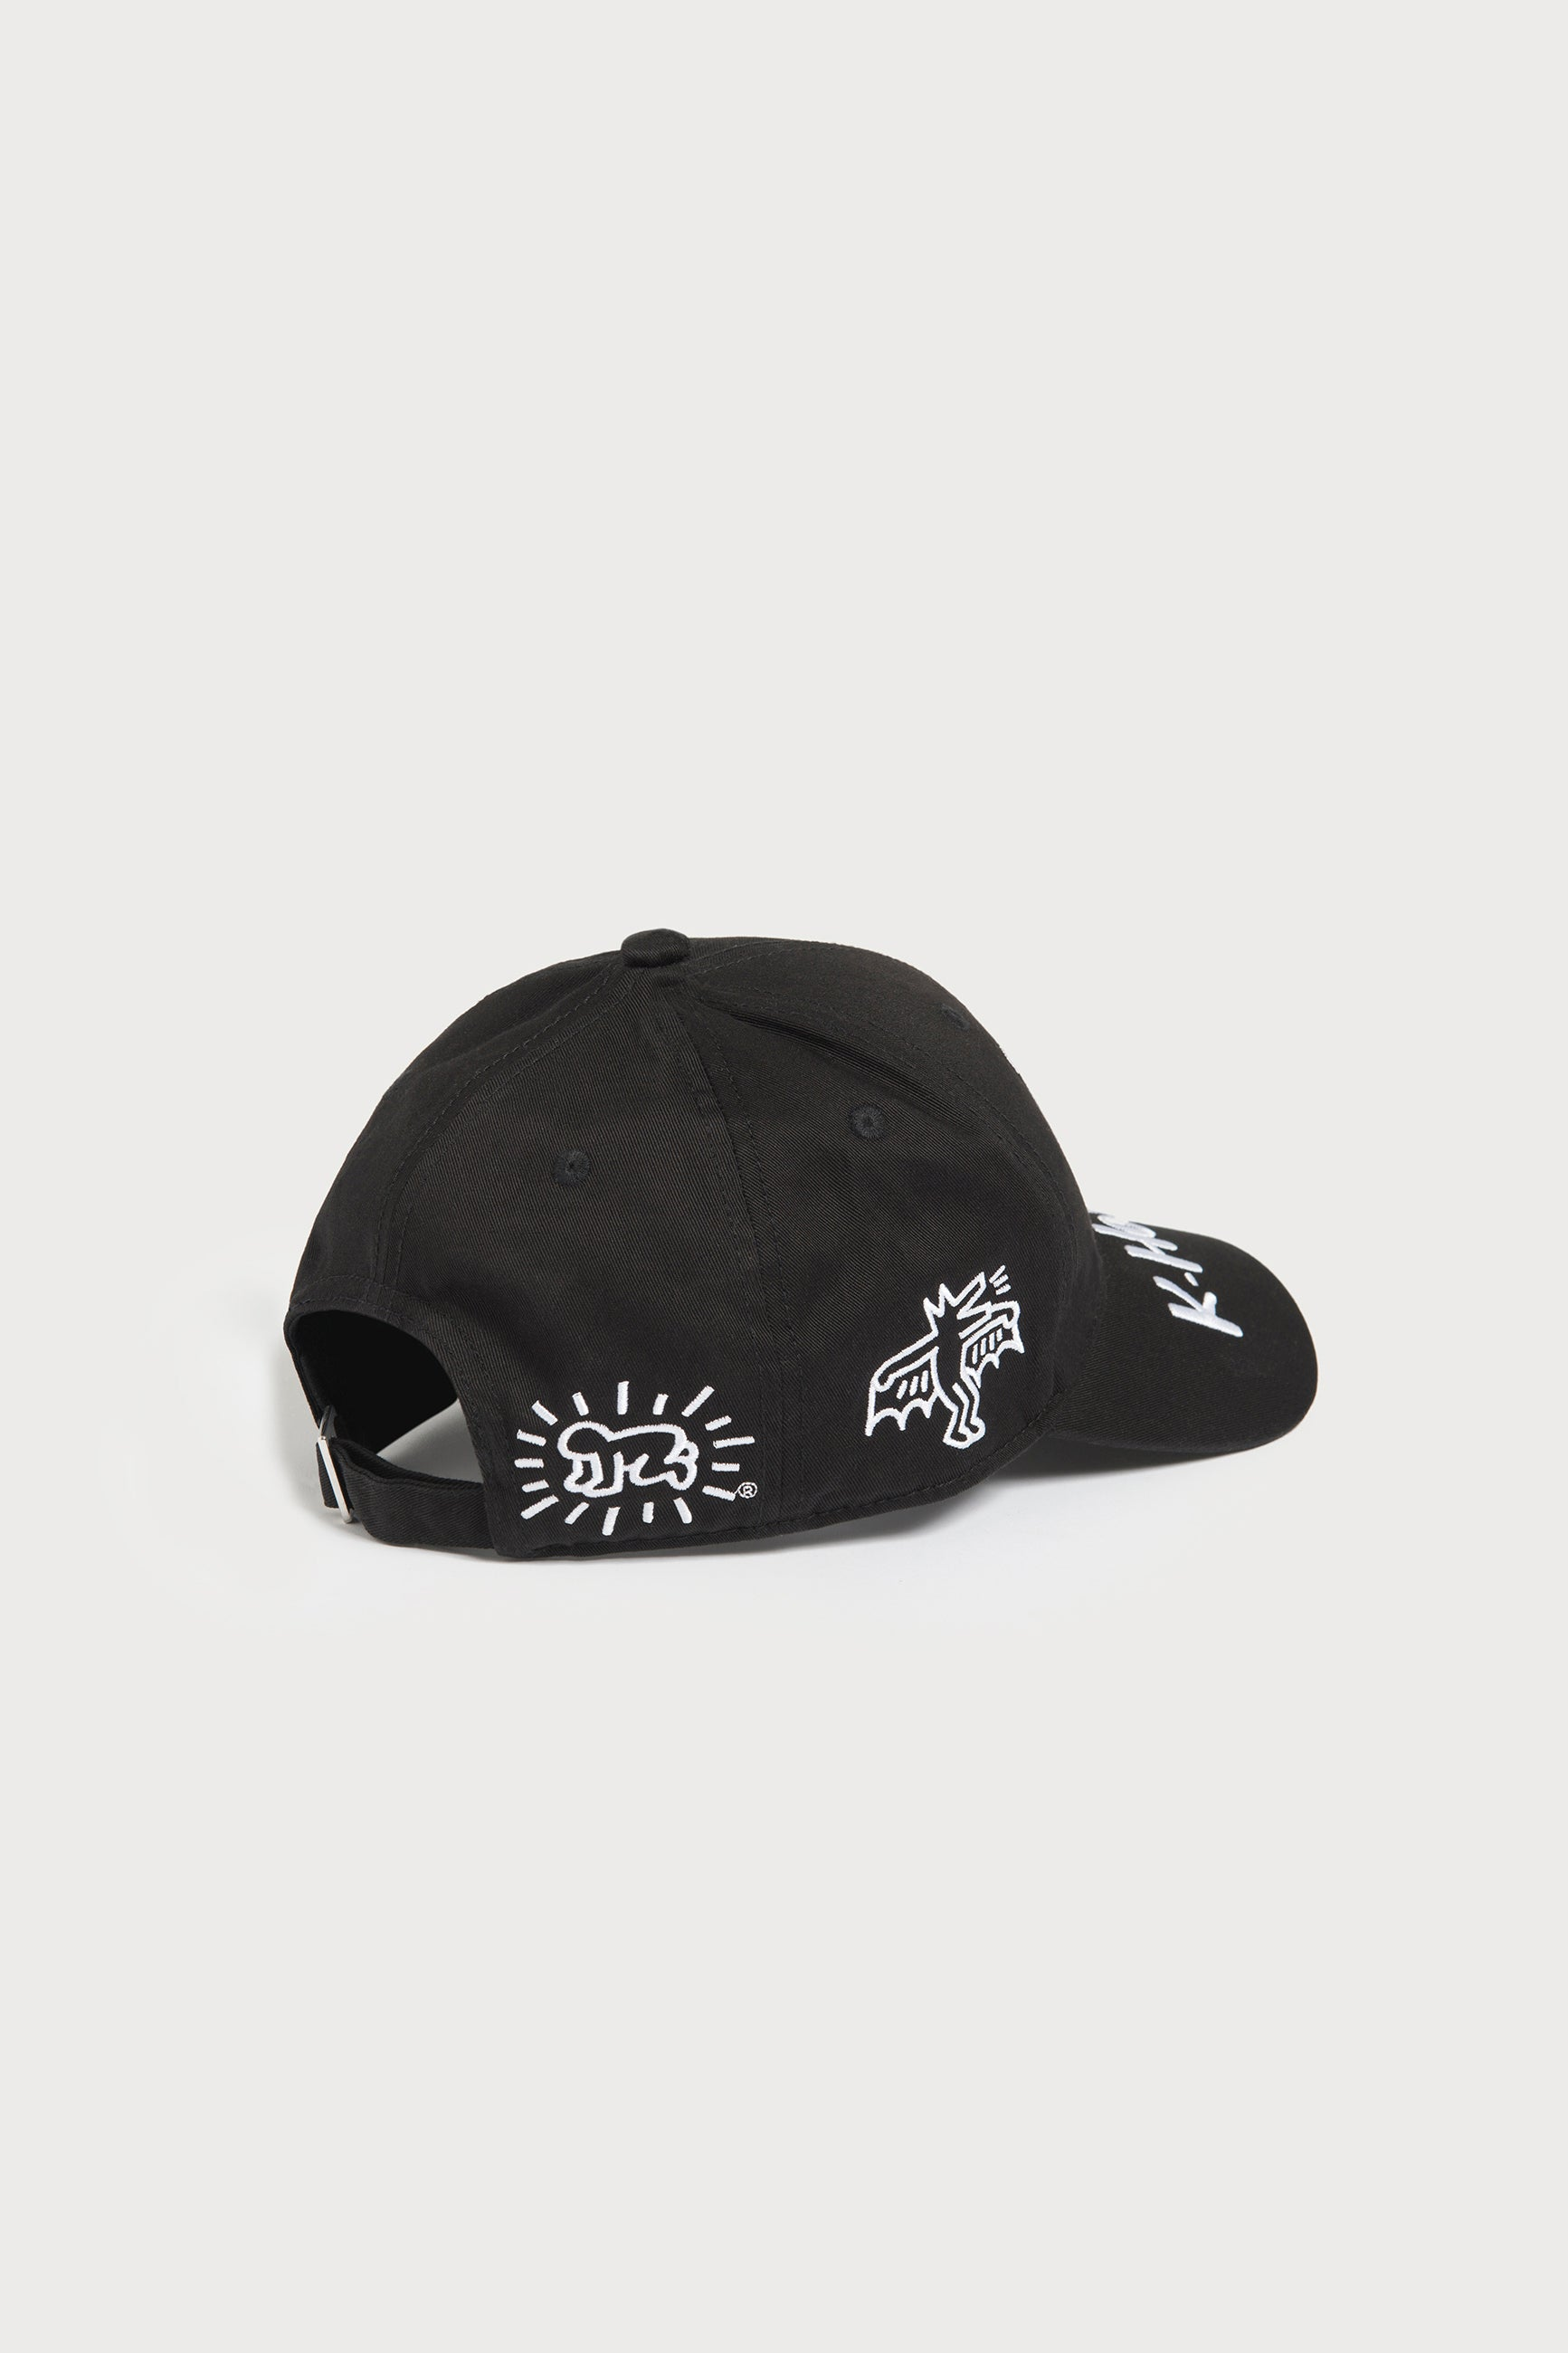 CLOUD KEITH HARING BLACK